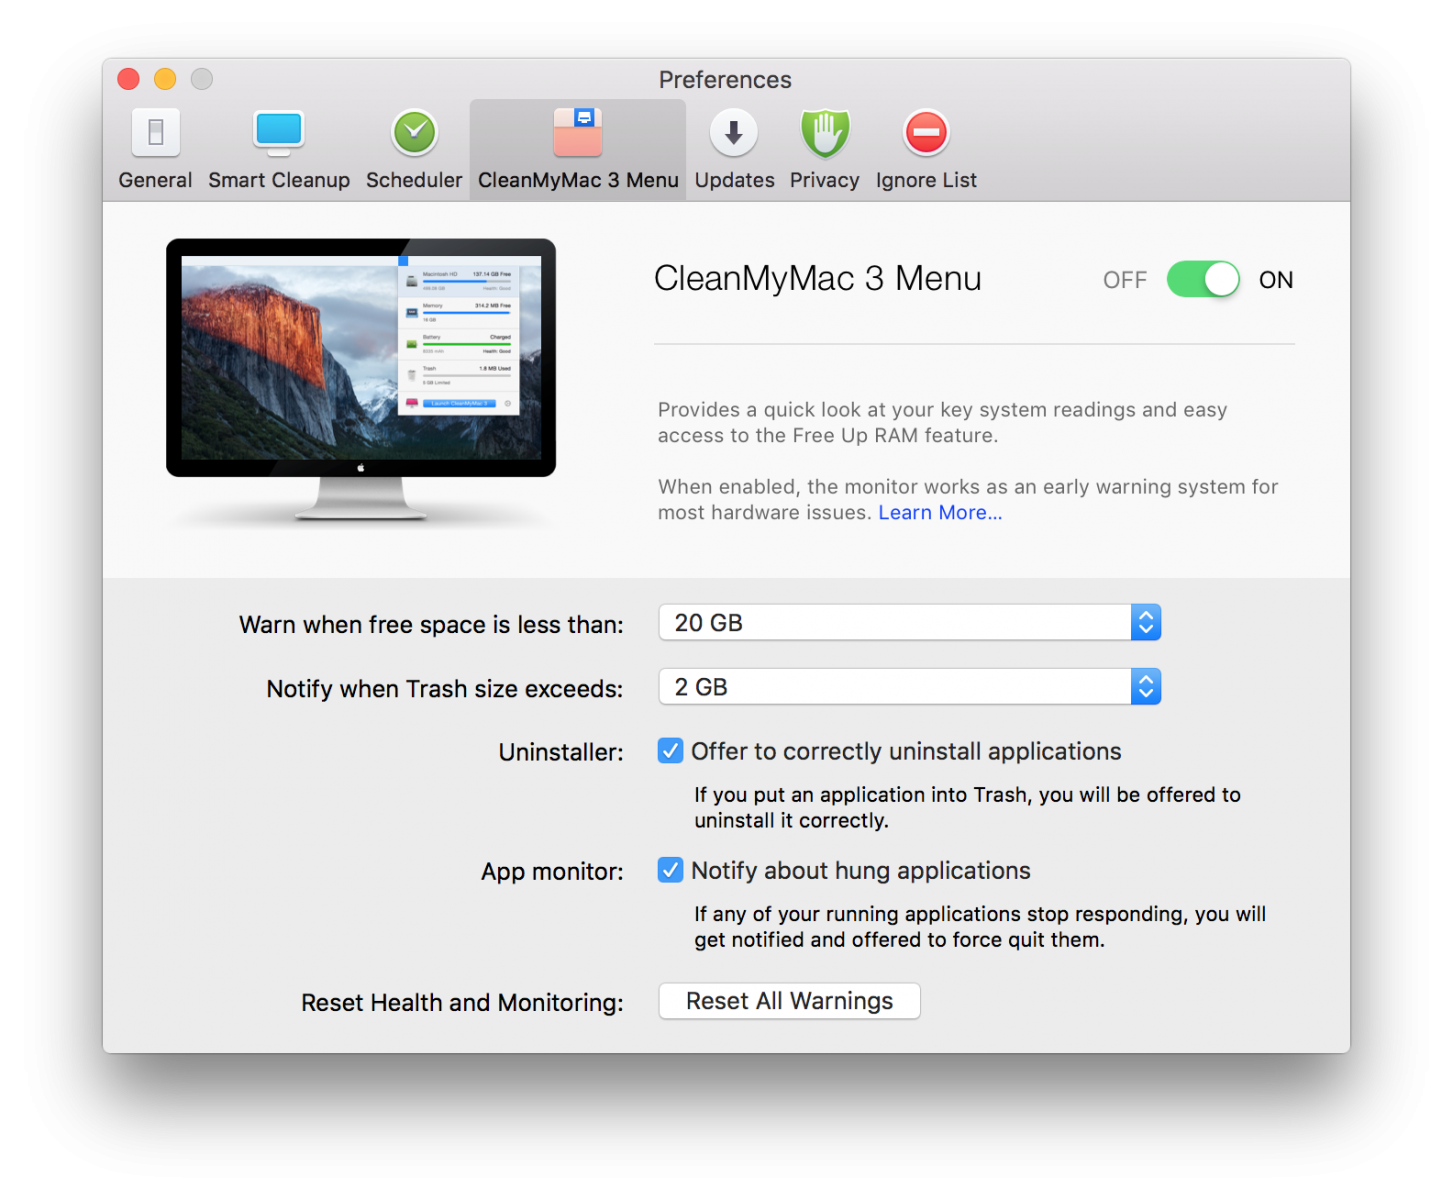 CleanMyMac 3 Menu tab